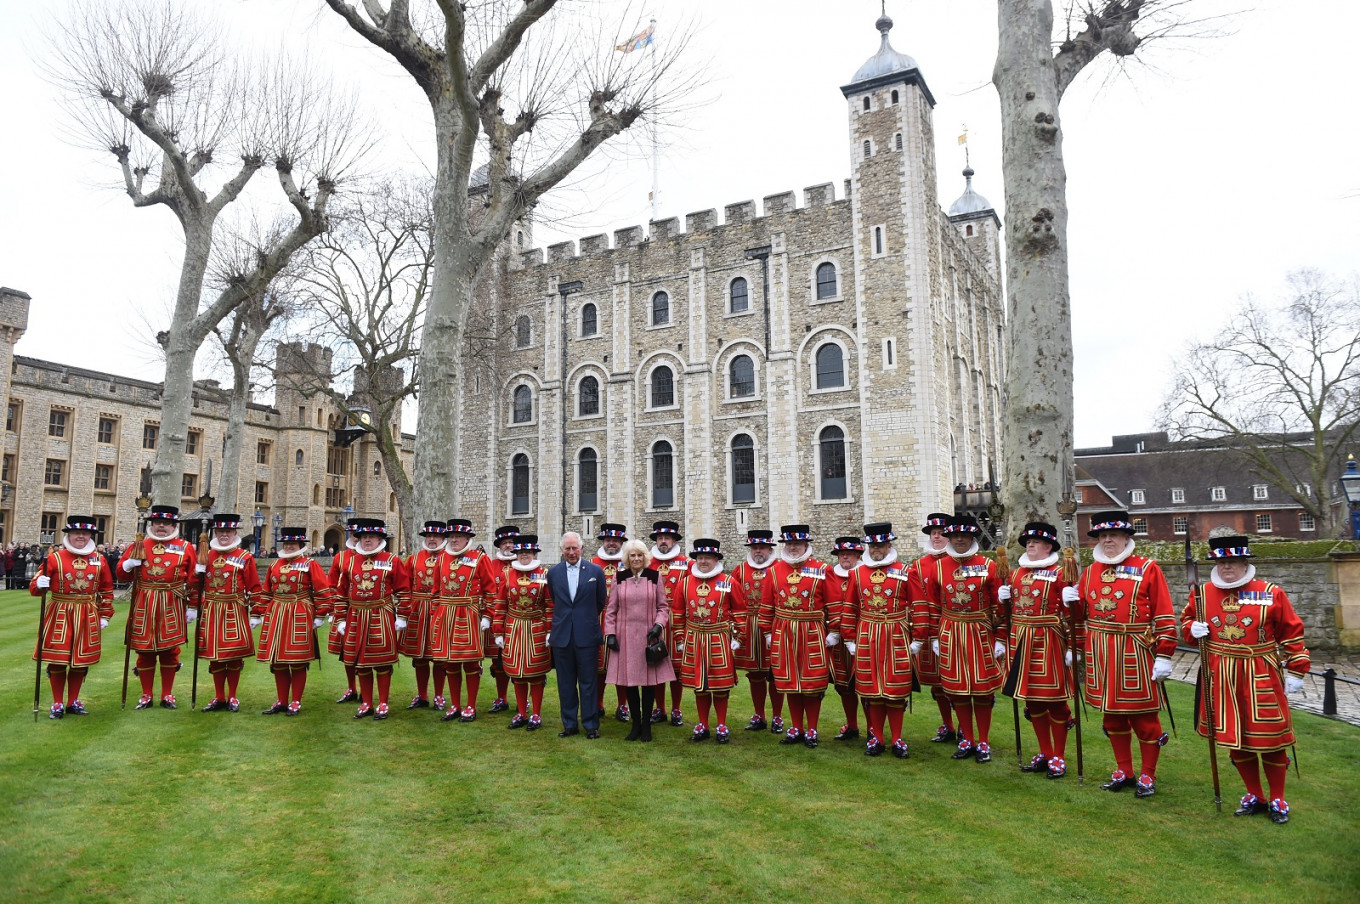 'Beefeaters' facing layoffs as coronavirus hits tourism